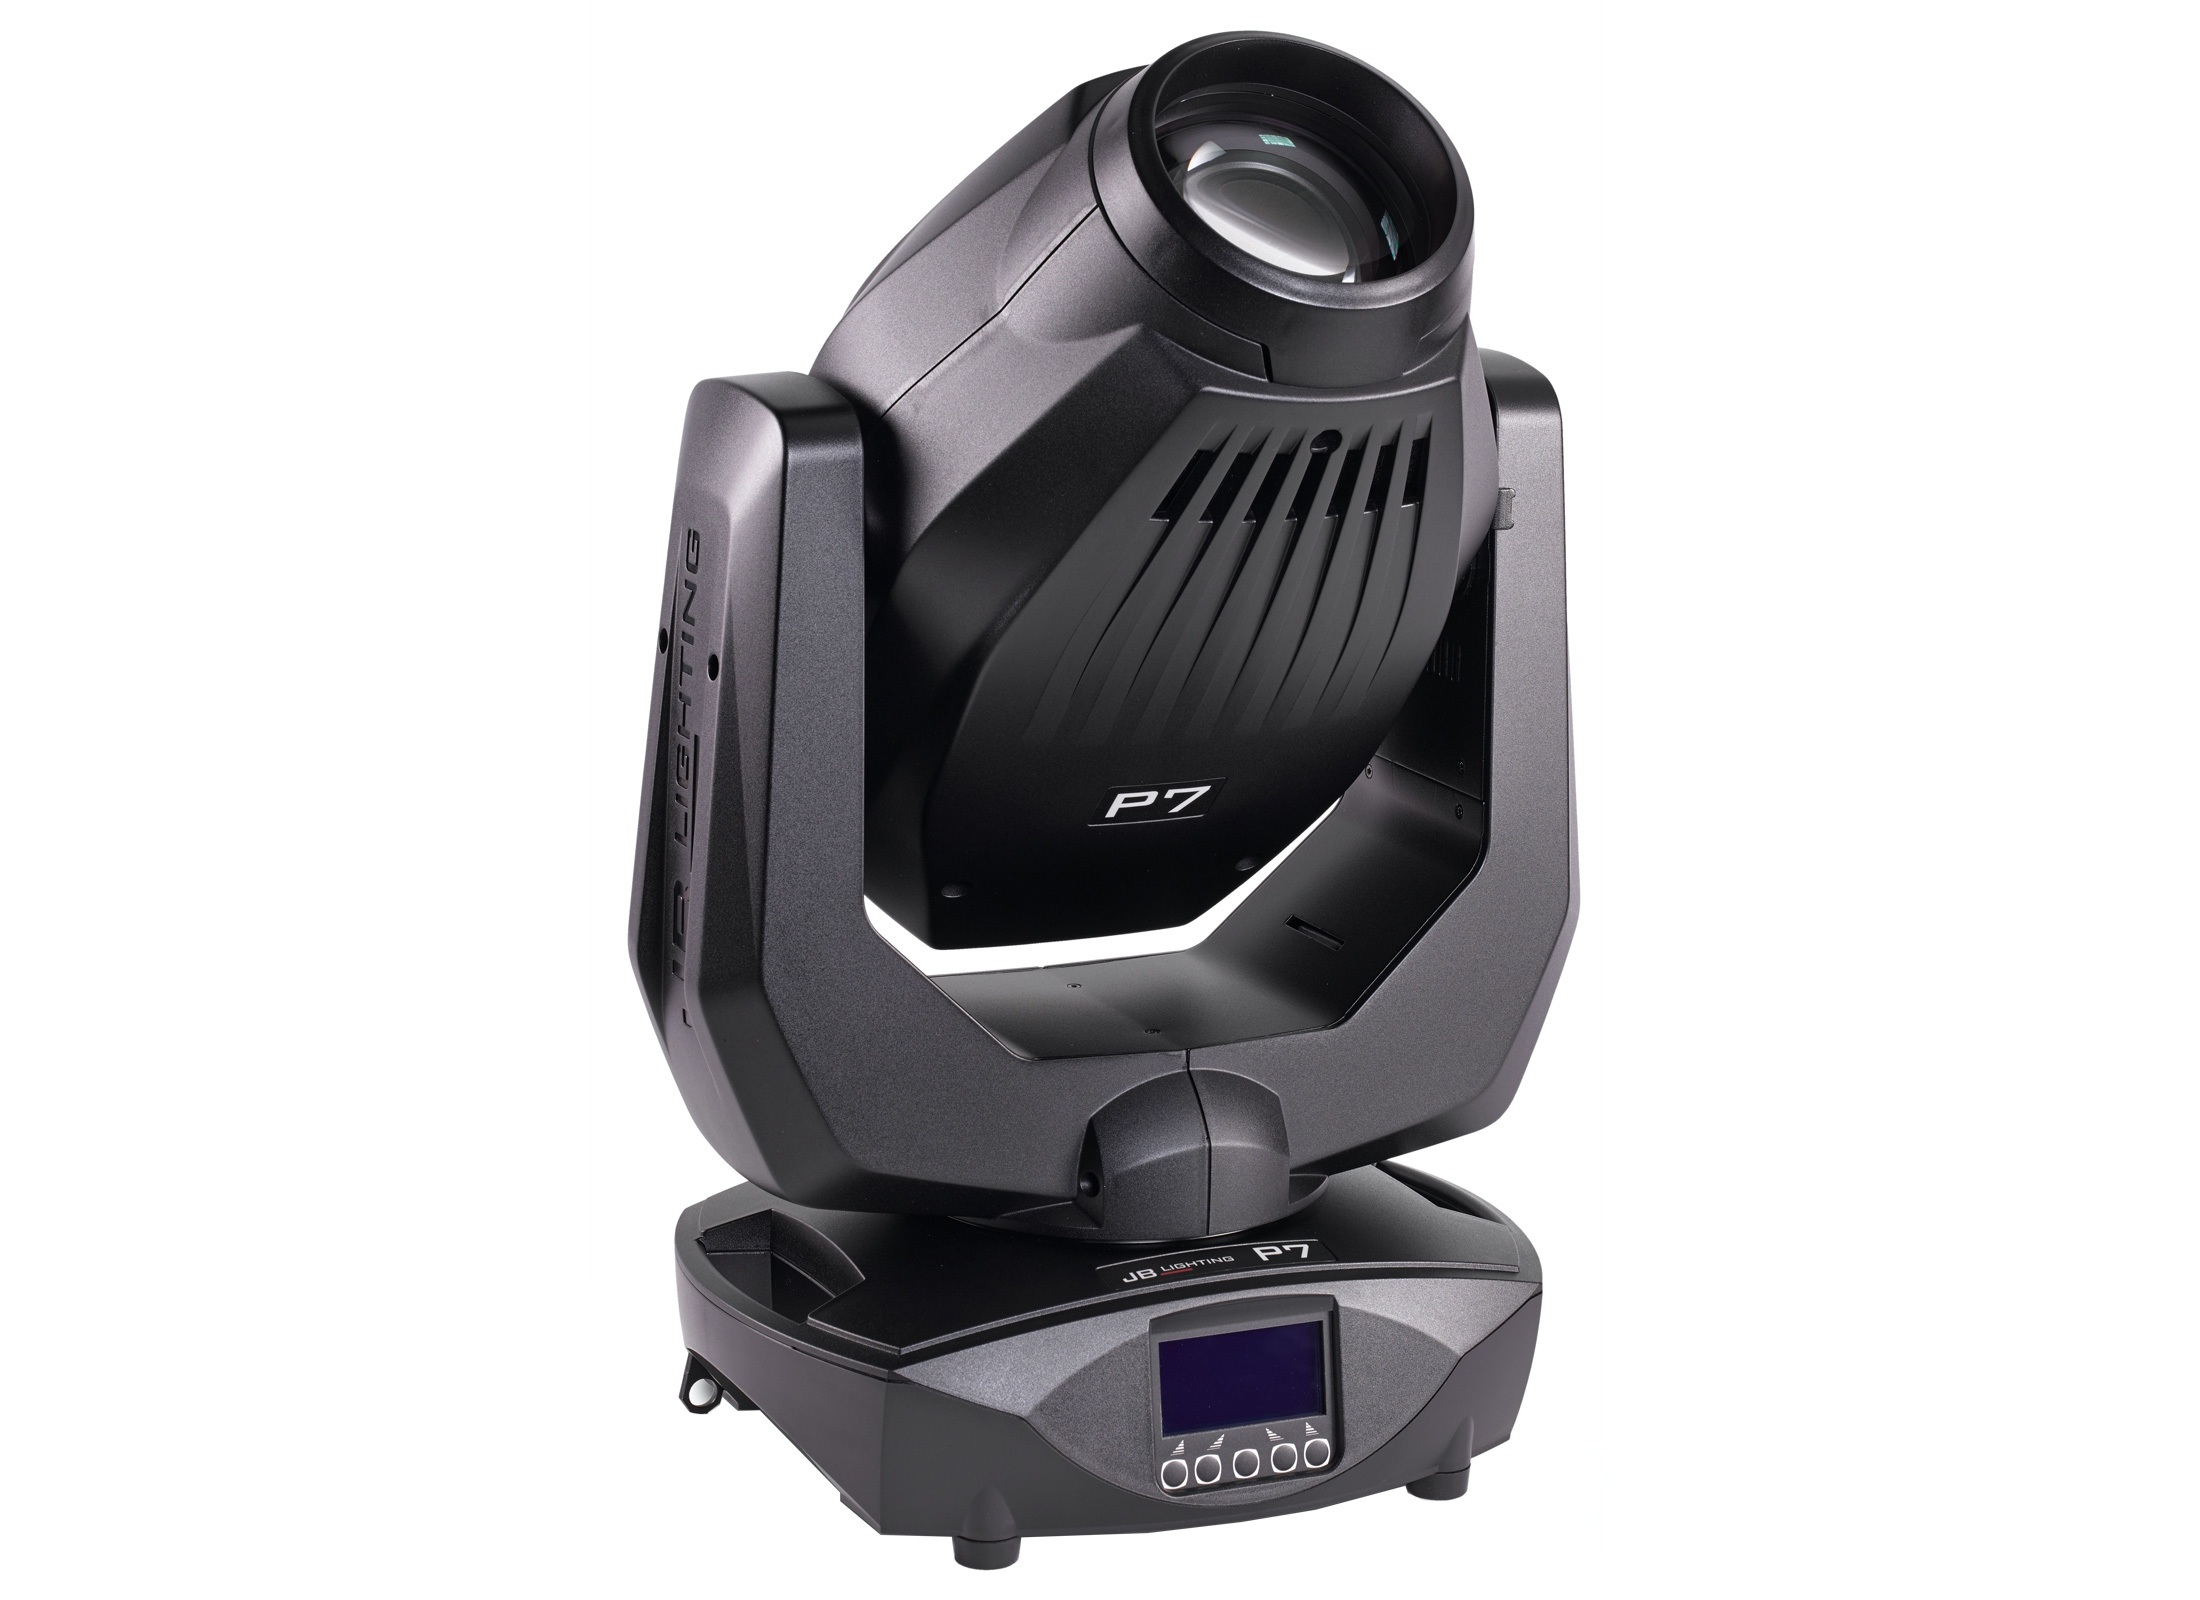 Jb Lighting Varyscan P6 Jb Lighting Varyscan P7 Cmy Moving Head Spot Online At Low